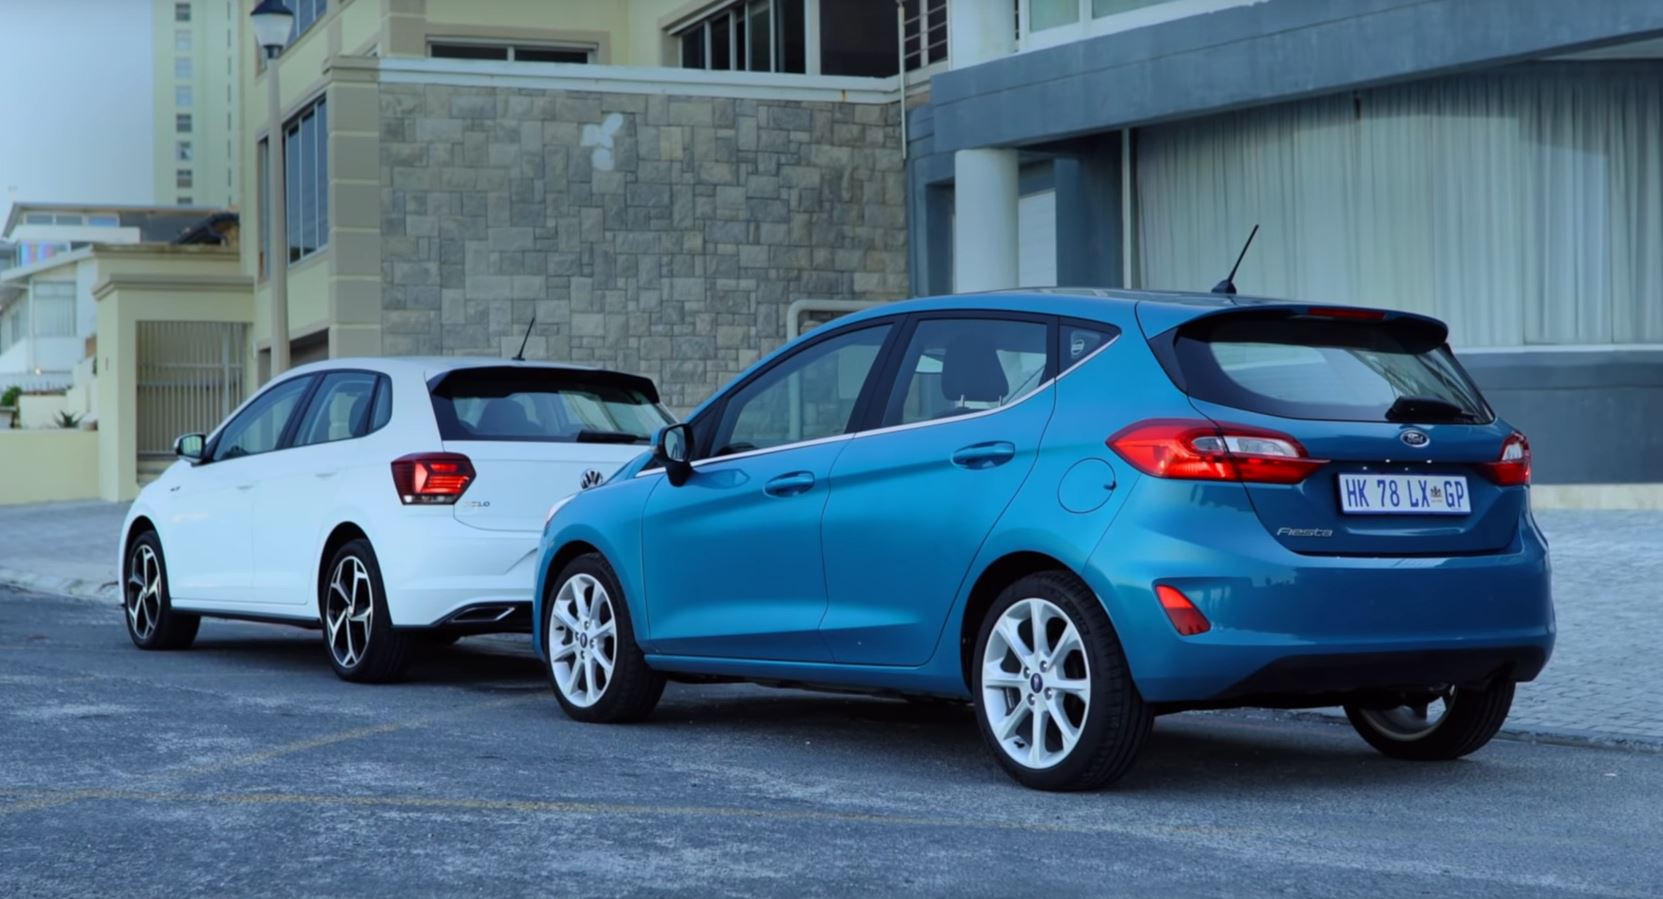 2018 Volkswagen Polo Takes On New Ford Fiesta In Battle Of The Superminis Autoevolution